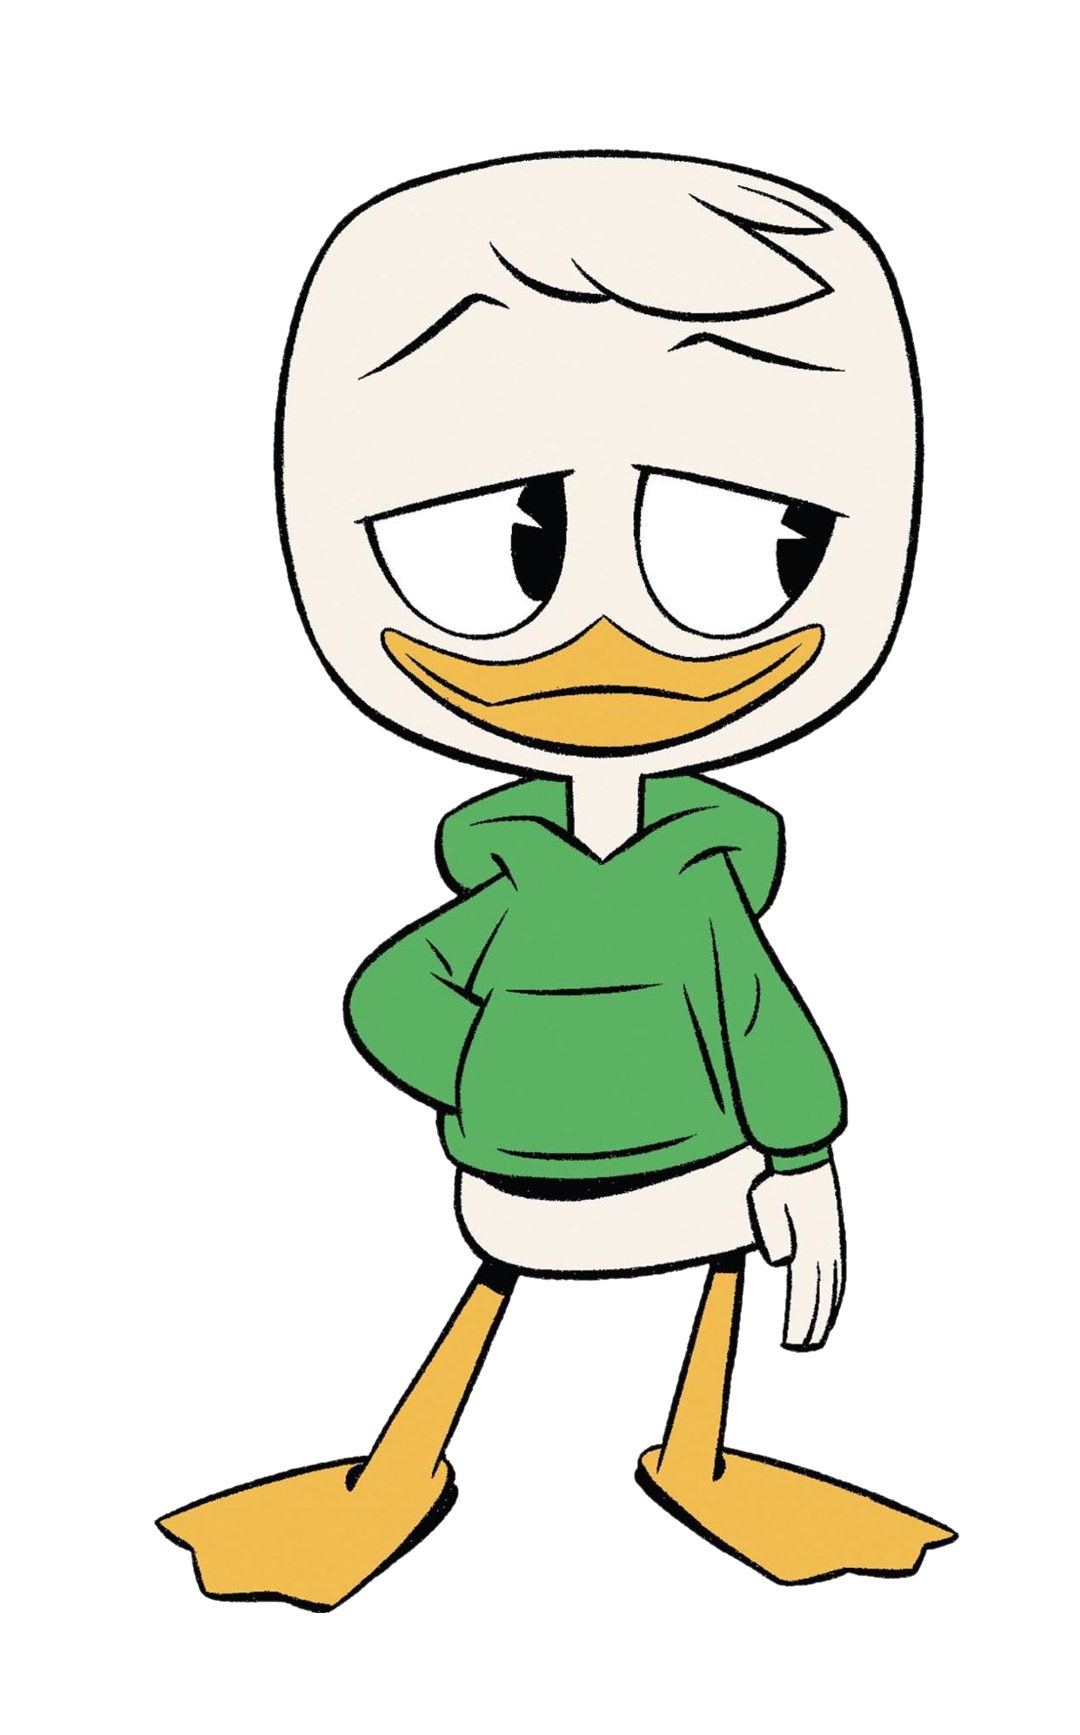 Huey, Dewey, and Louie | Disney Wiki | FANDOM powered by Wikia